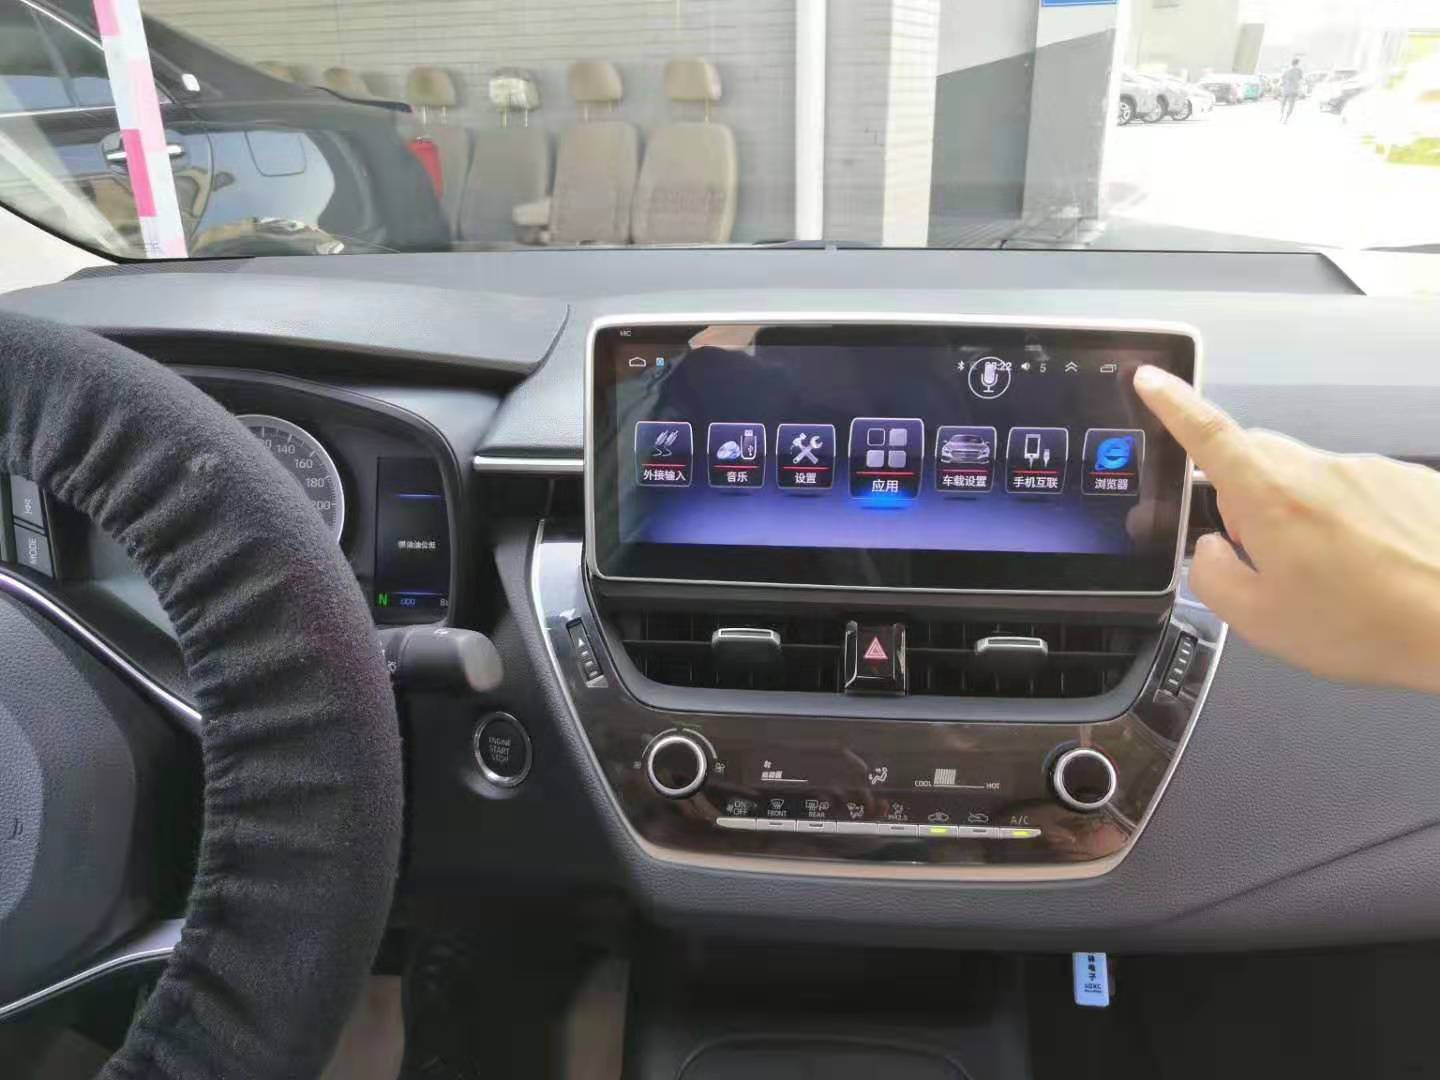 10.25 Inch Android Car Multimedia Navigation For Toyota New Corolla 2019